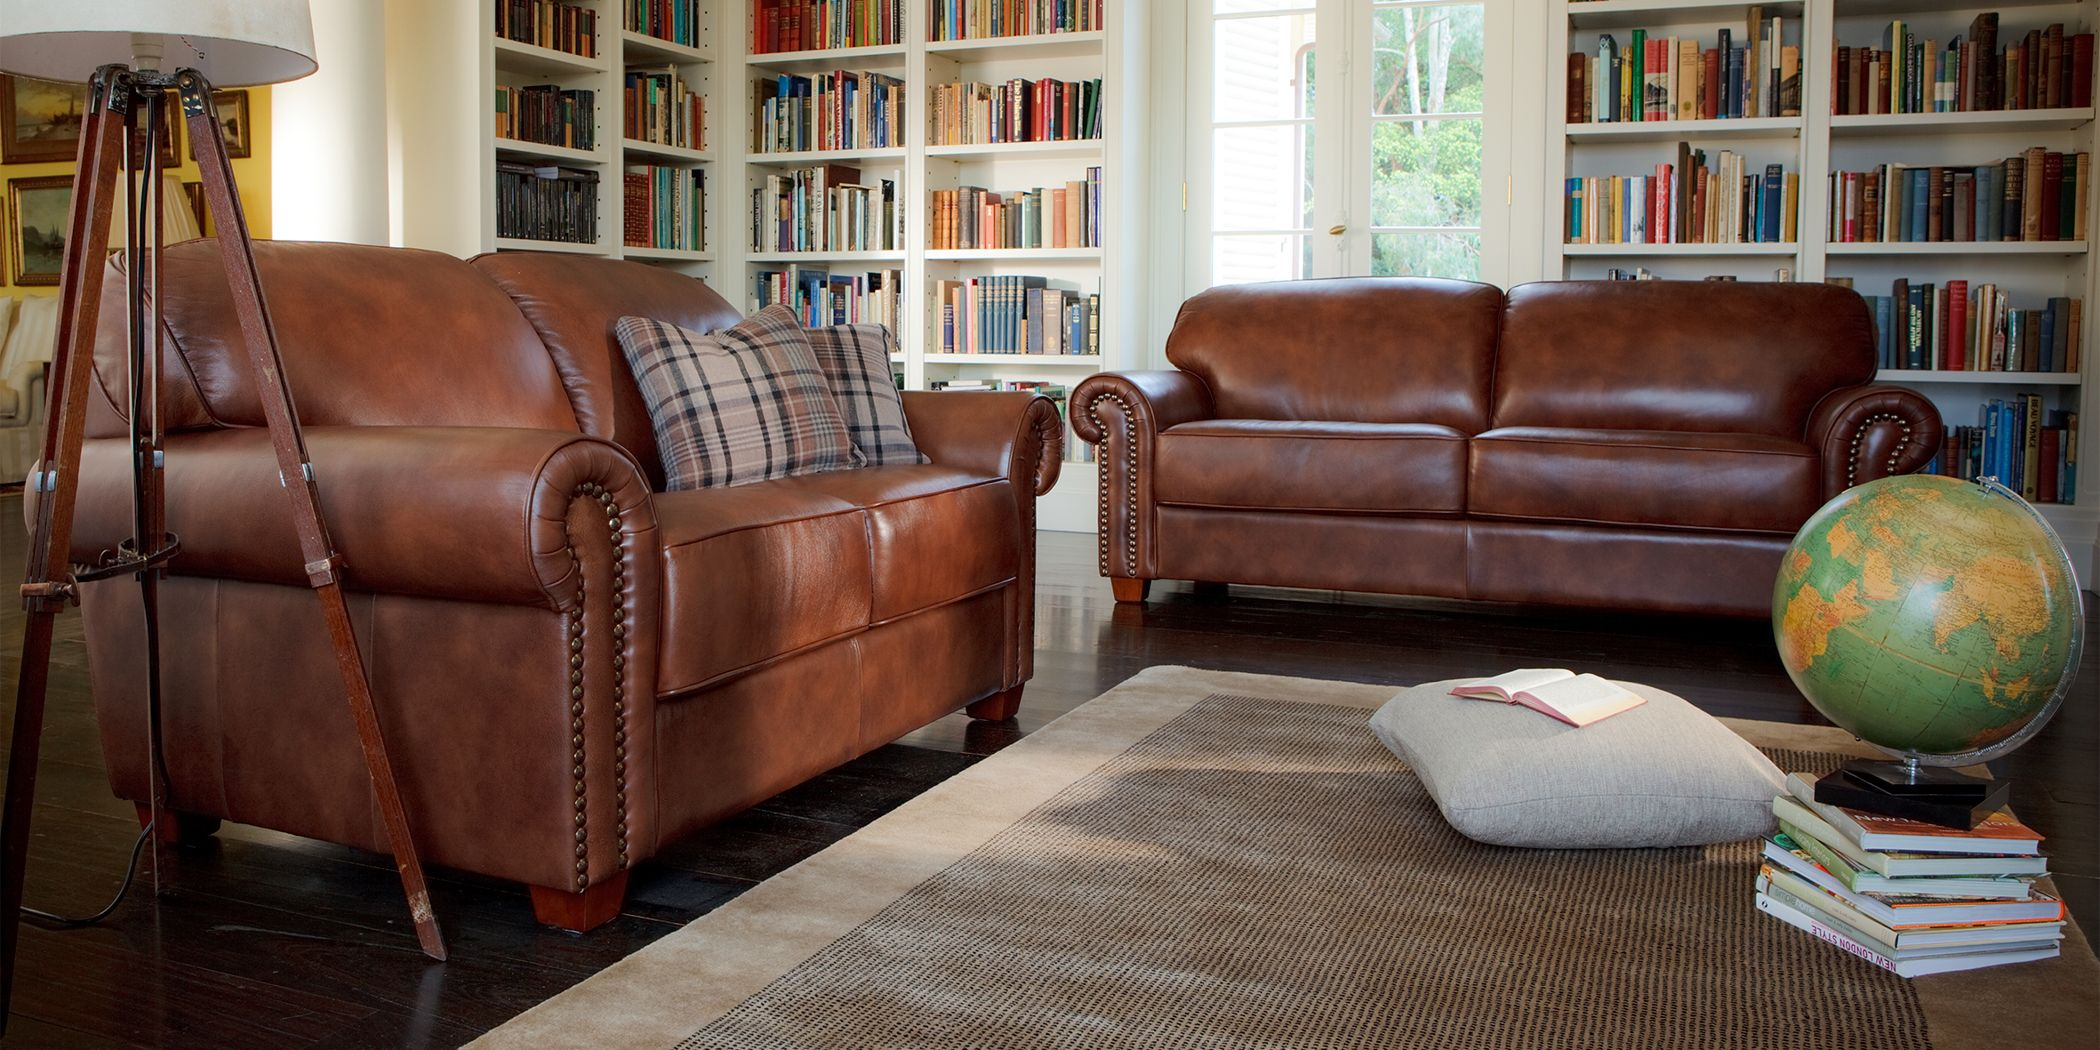 Cambridge Sofa Comfortable Sofa Plush Sofa Brown Leather Couch